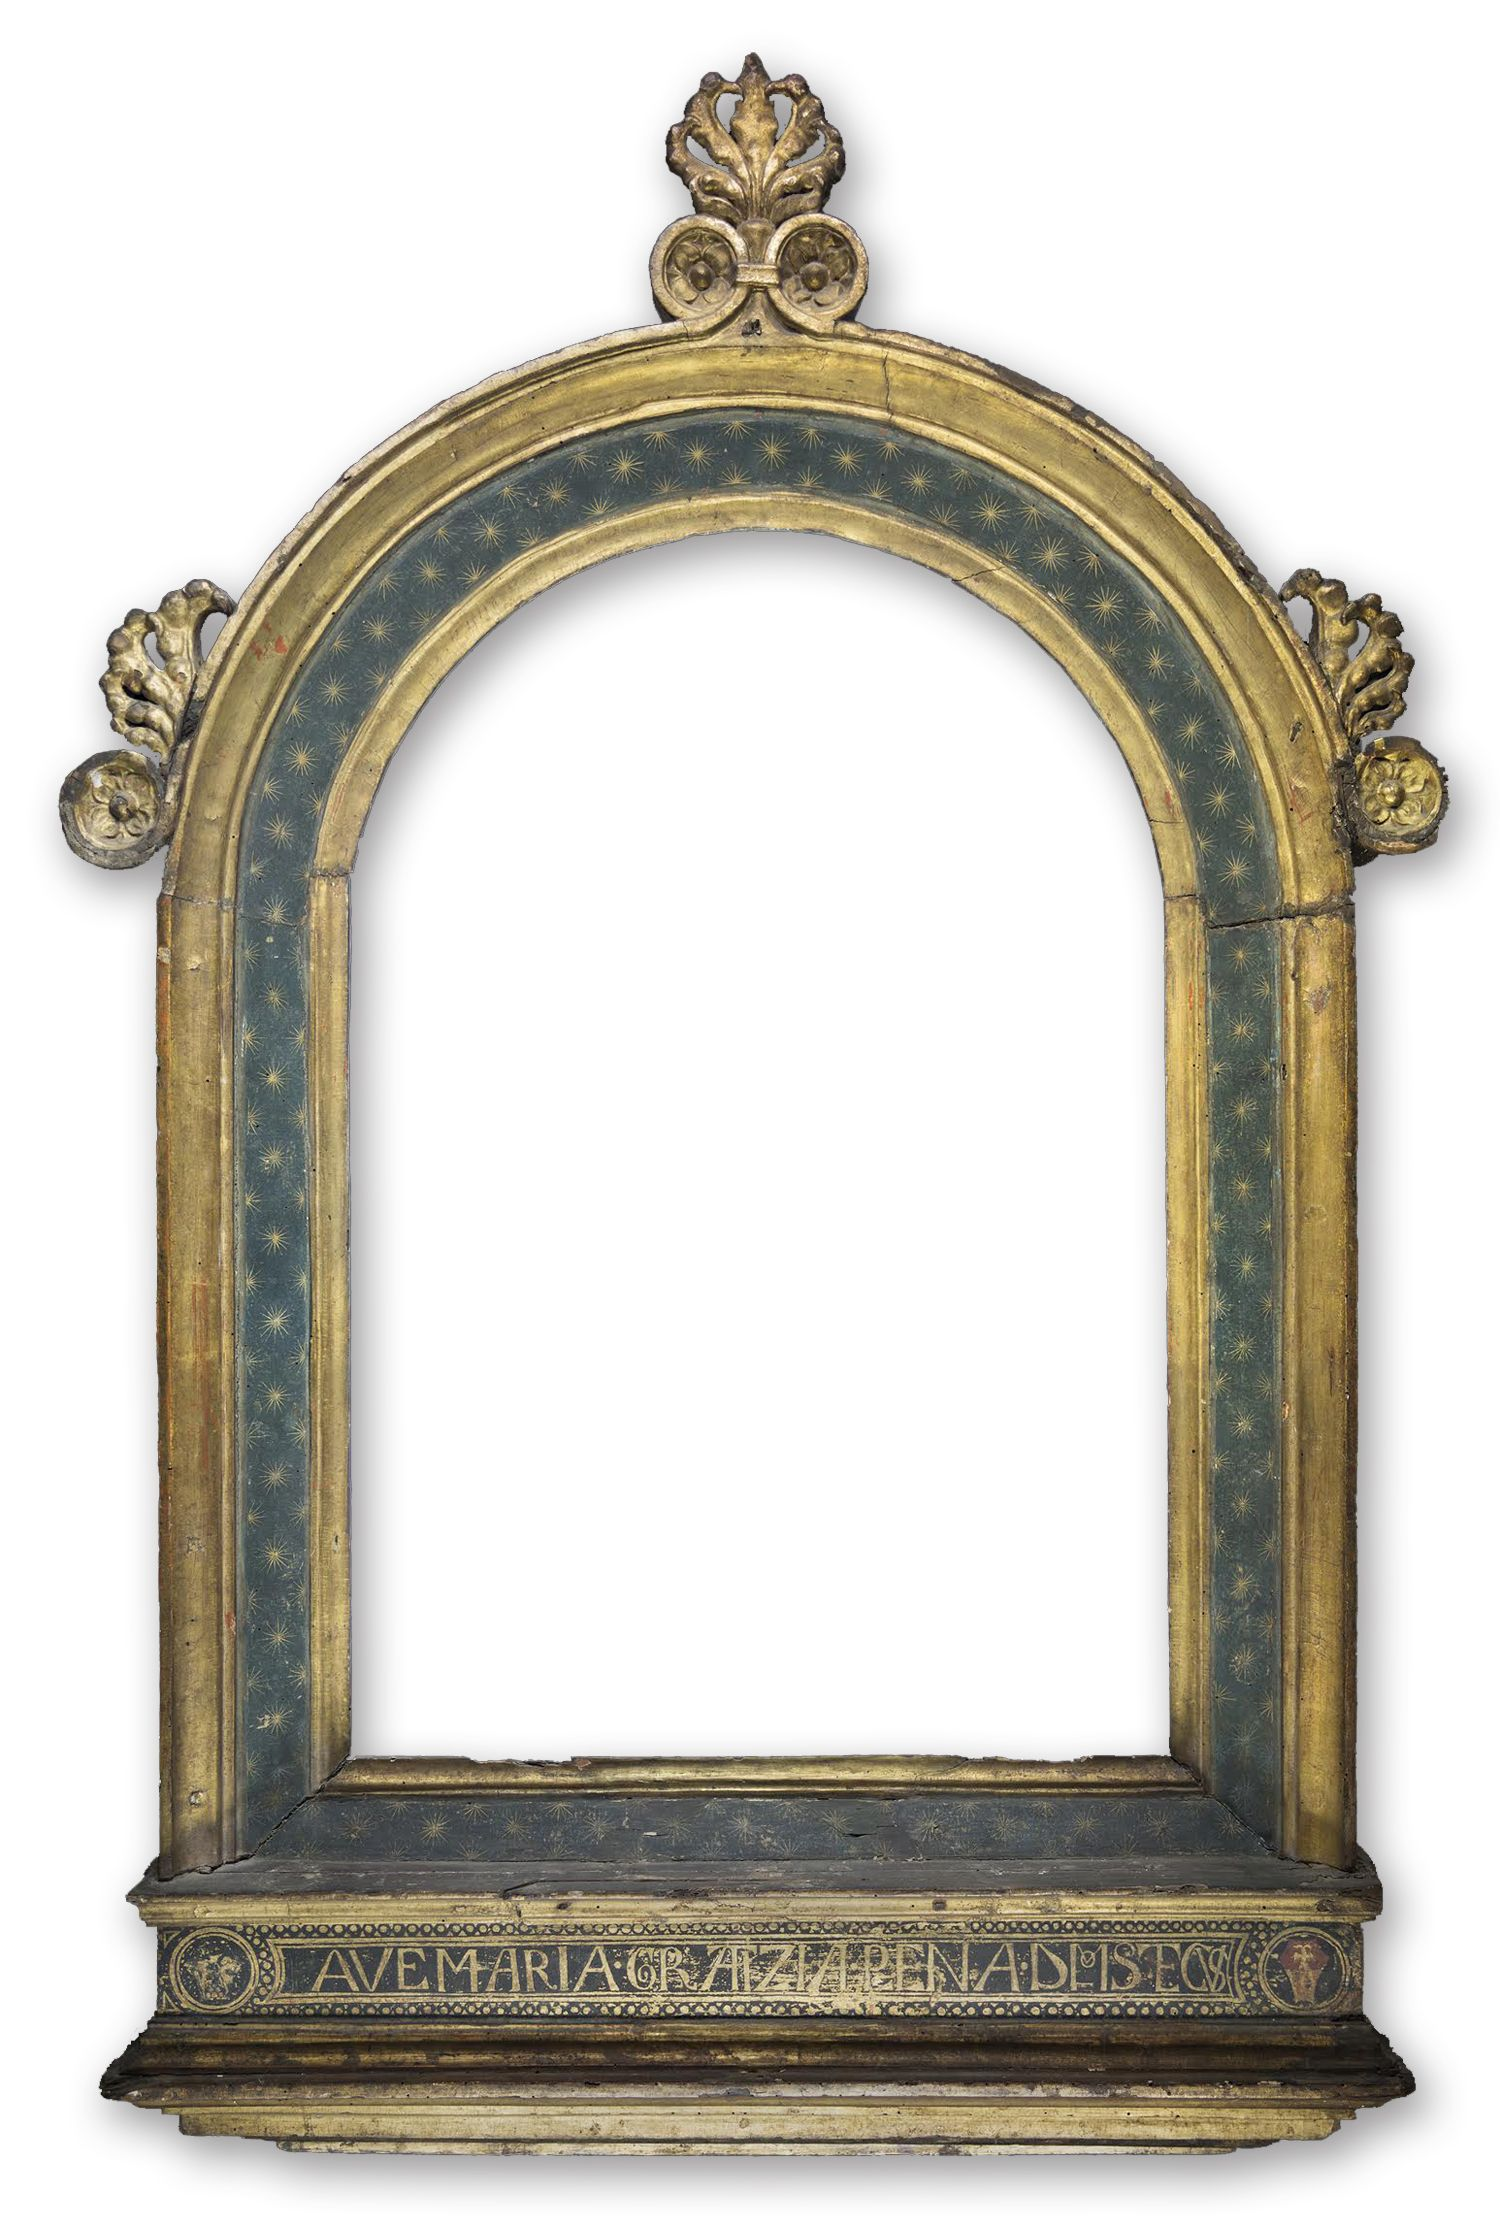 of italian renaissance parcel gilt and painted tabernacle an early italian renaissance frame made in siena incorporated sgraffito stars in the frame panel